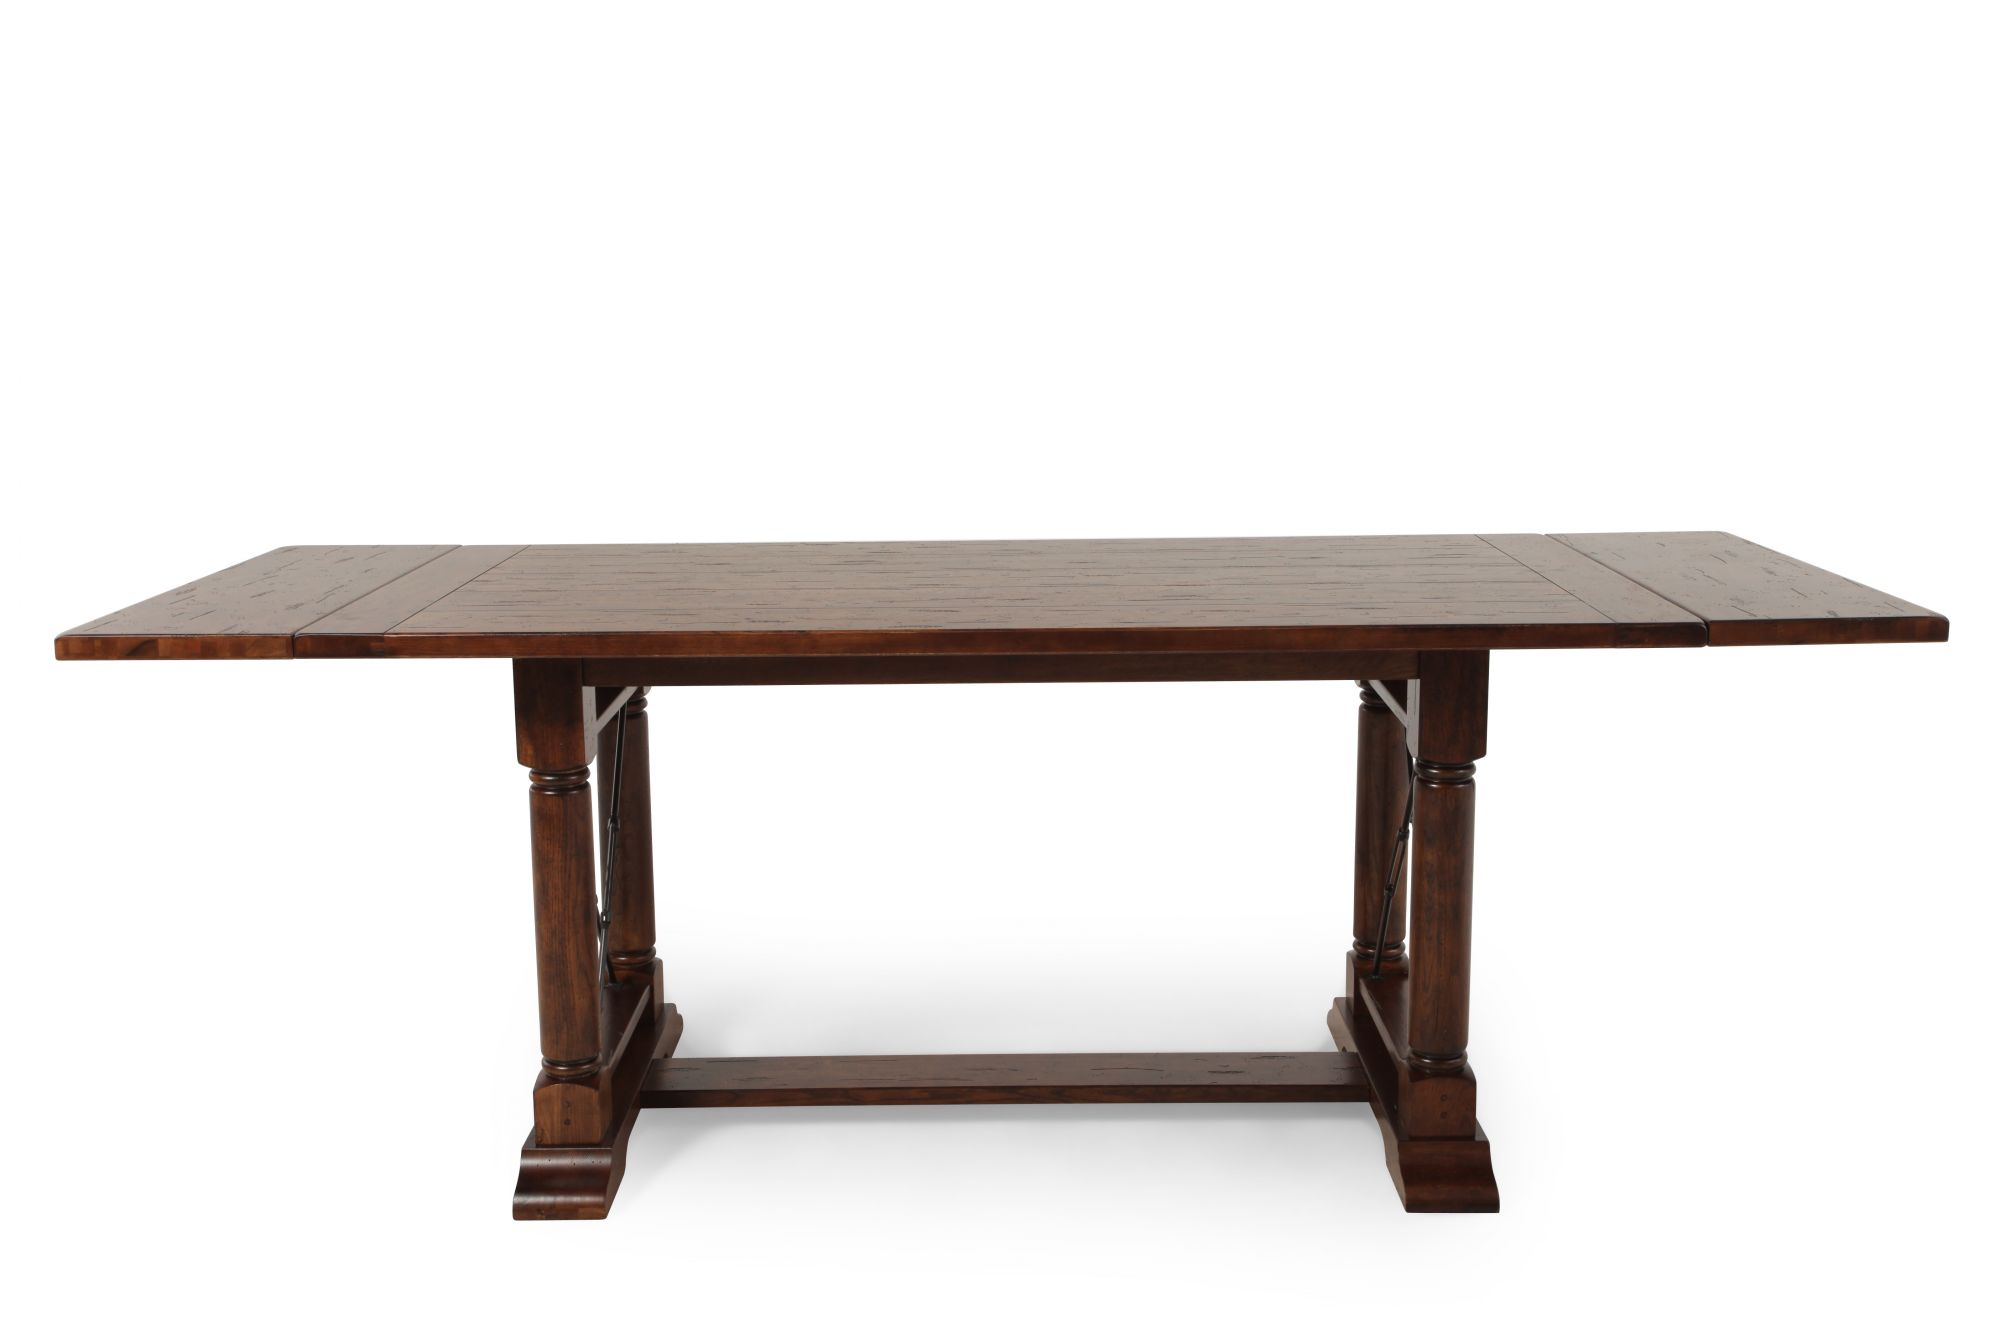 Broyhill Attic Heirlooms Rustic Oak Counter Height Table Mathis Brothers Fu